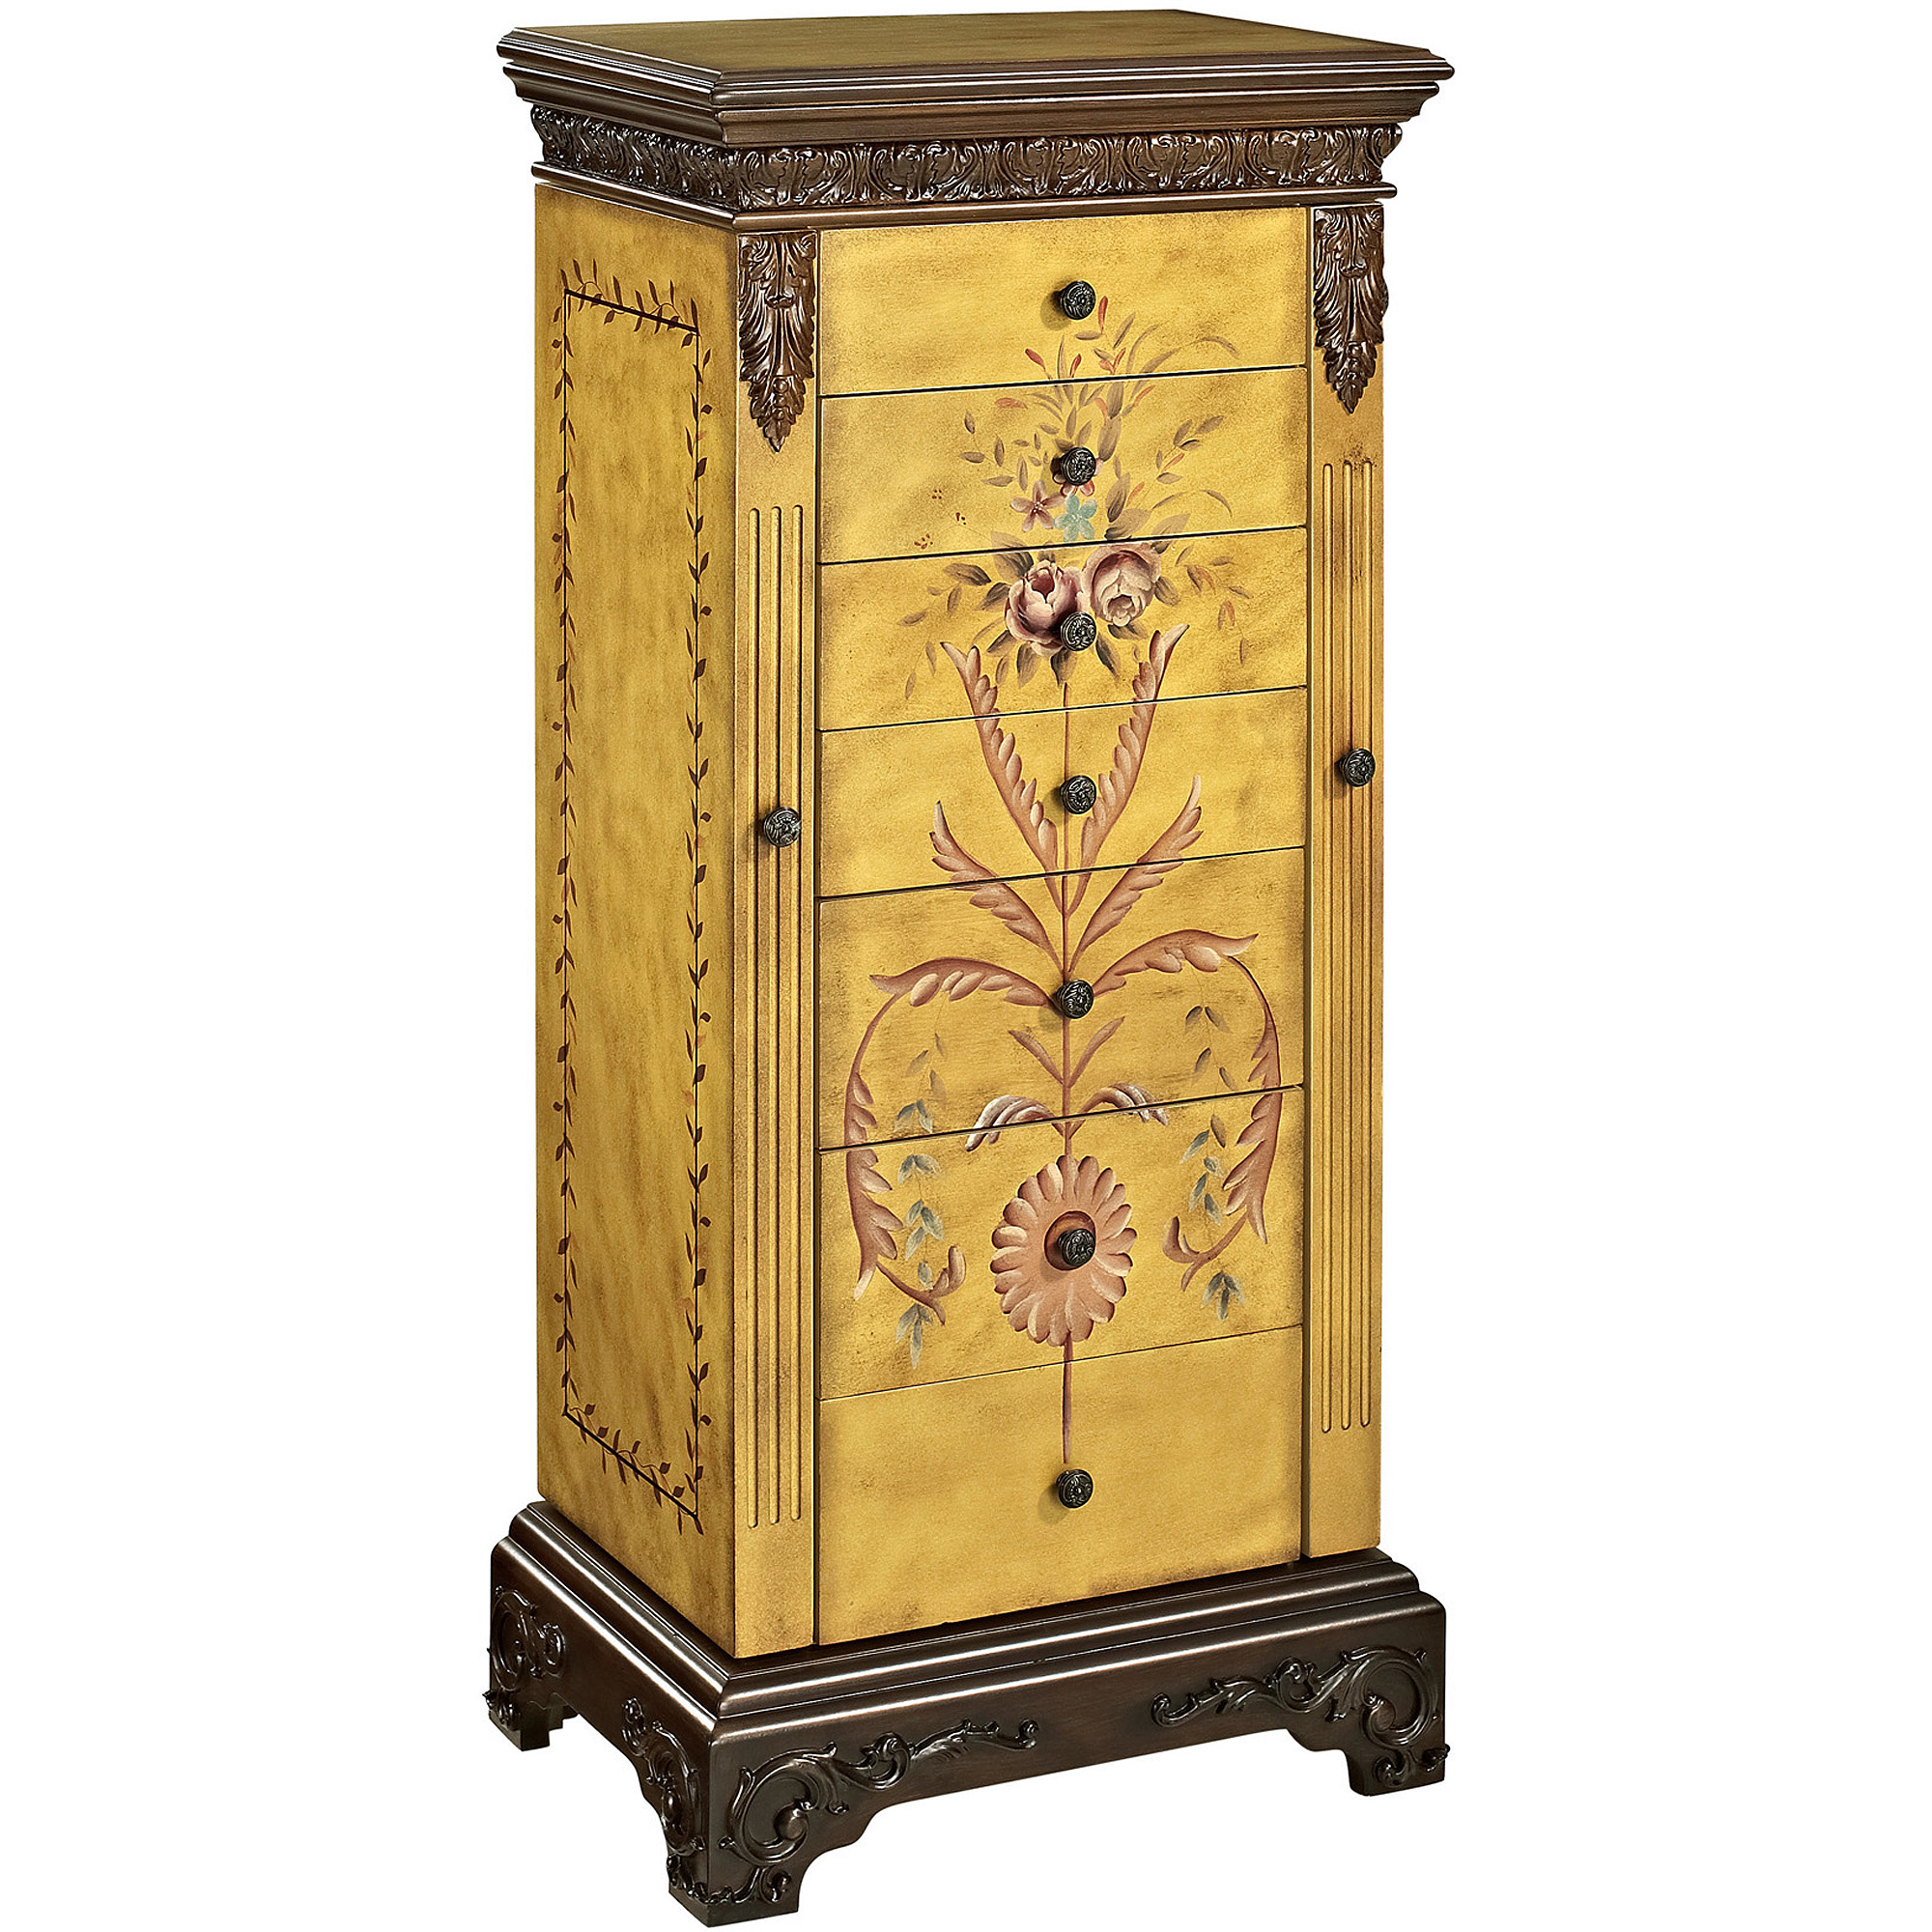 Masterpiece Hand-Painted Jewelry Armoire, Antique Parchment